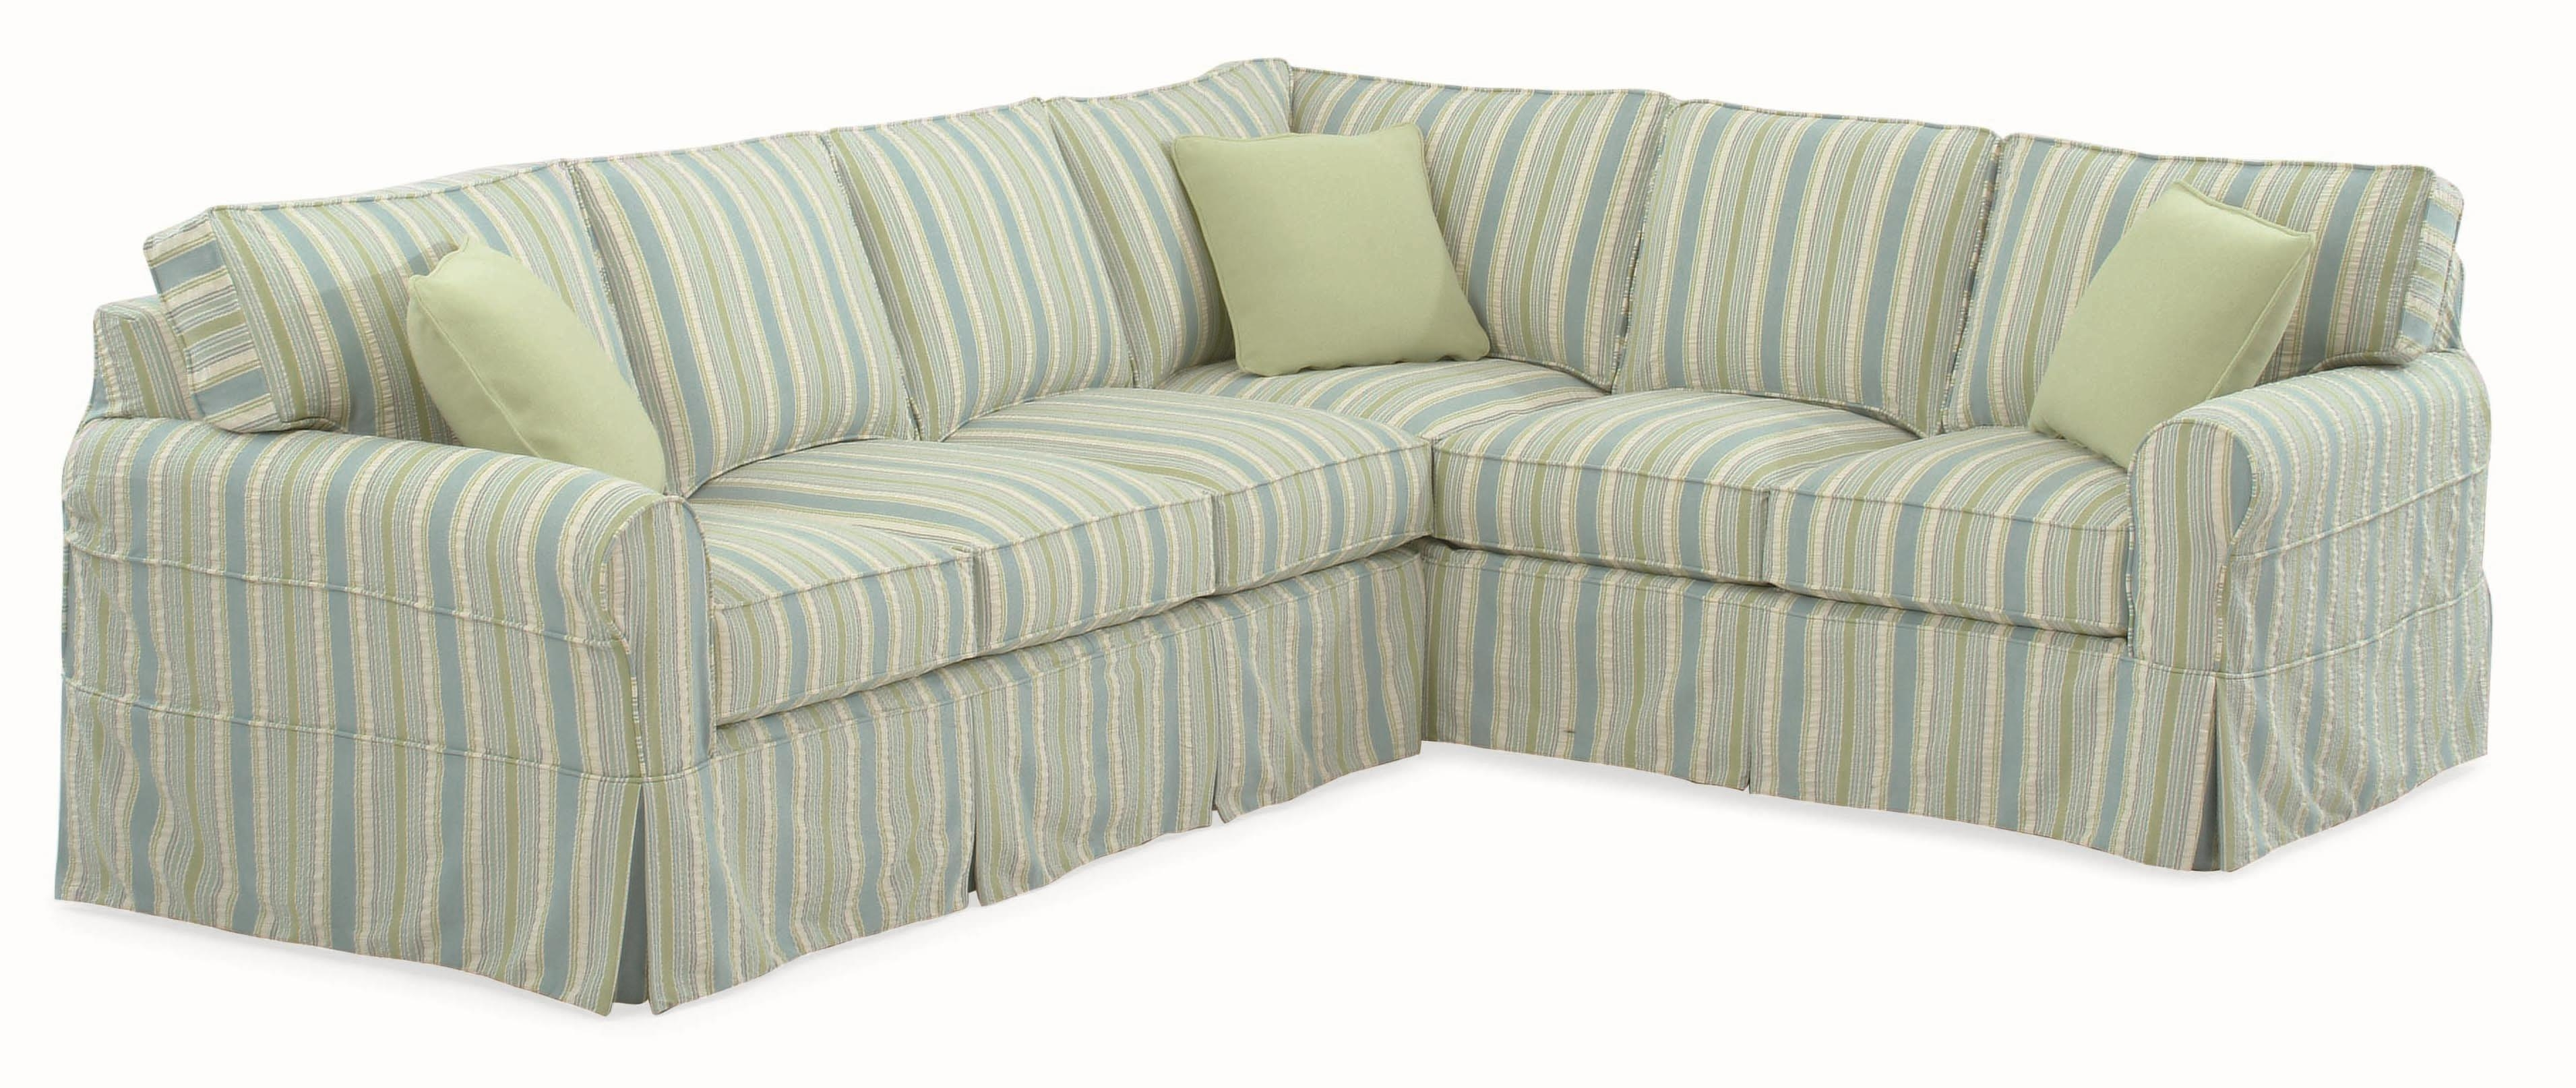 Braxton Culler 728 Casual Sectional Sofa With Rolled Arms And With Braxton Sofa (View 15 of 20)